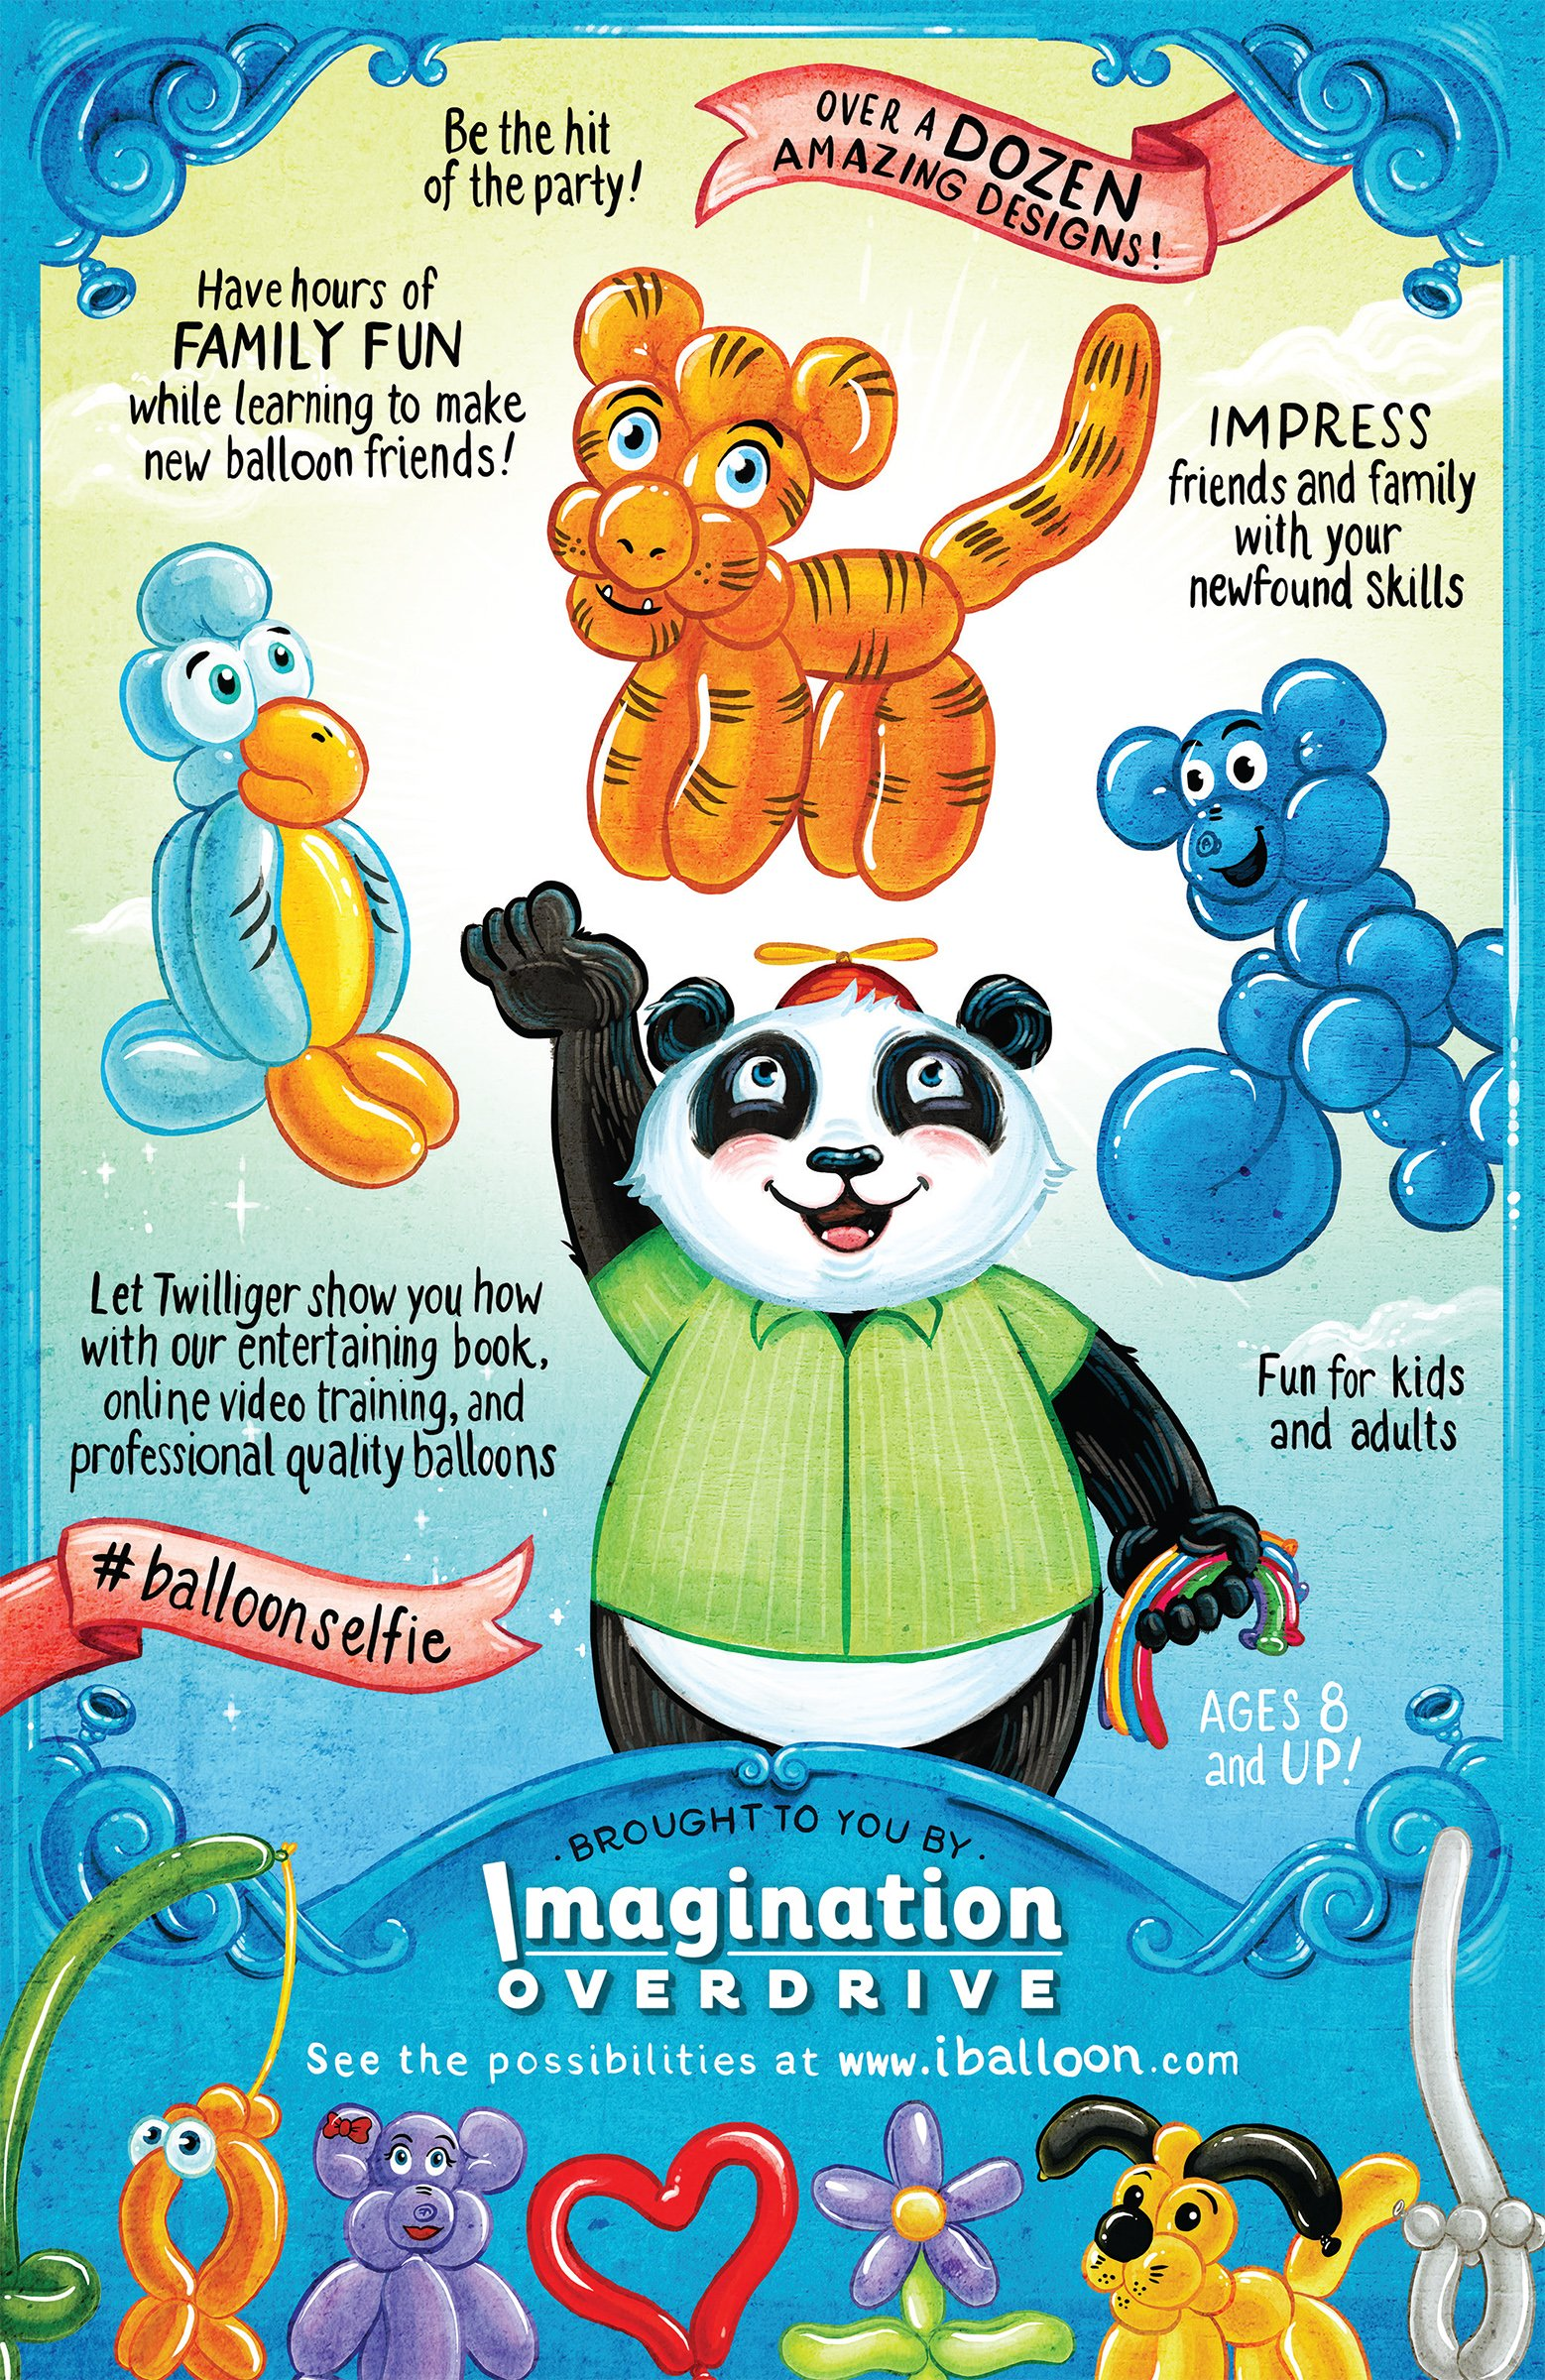 Balloon Animal University PRO Kit with 100 balloons, Now With NEW Sculptures! How-To Videos, Qualatex Balloons, Pump, Instruction Book. Learn to Make Balloon Animals Fun Party Activity Holiday Gift by Imagination Overdrive (Image #4)